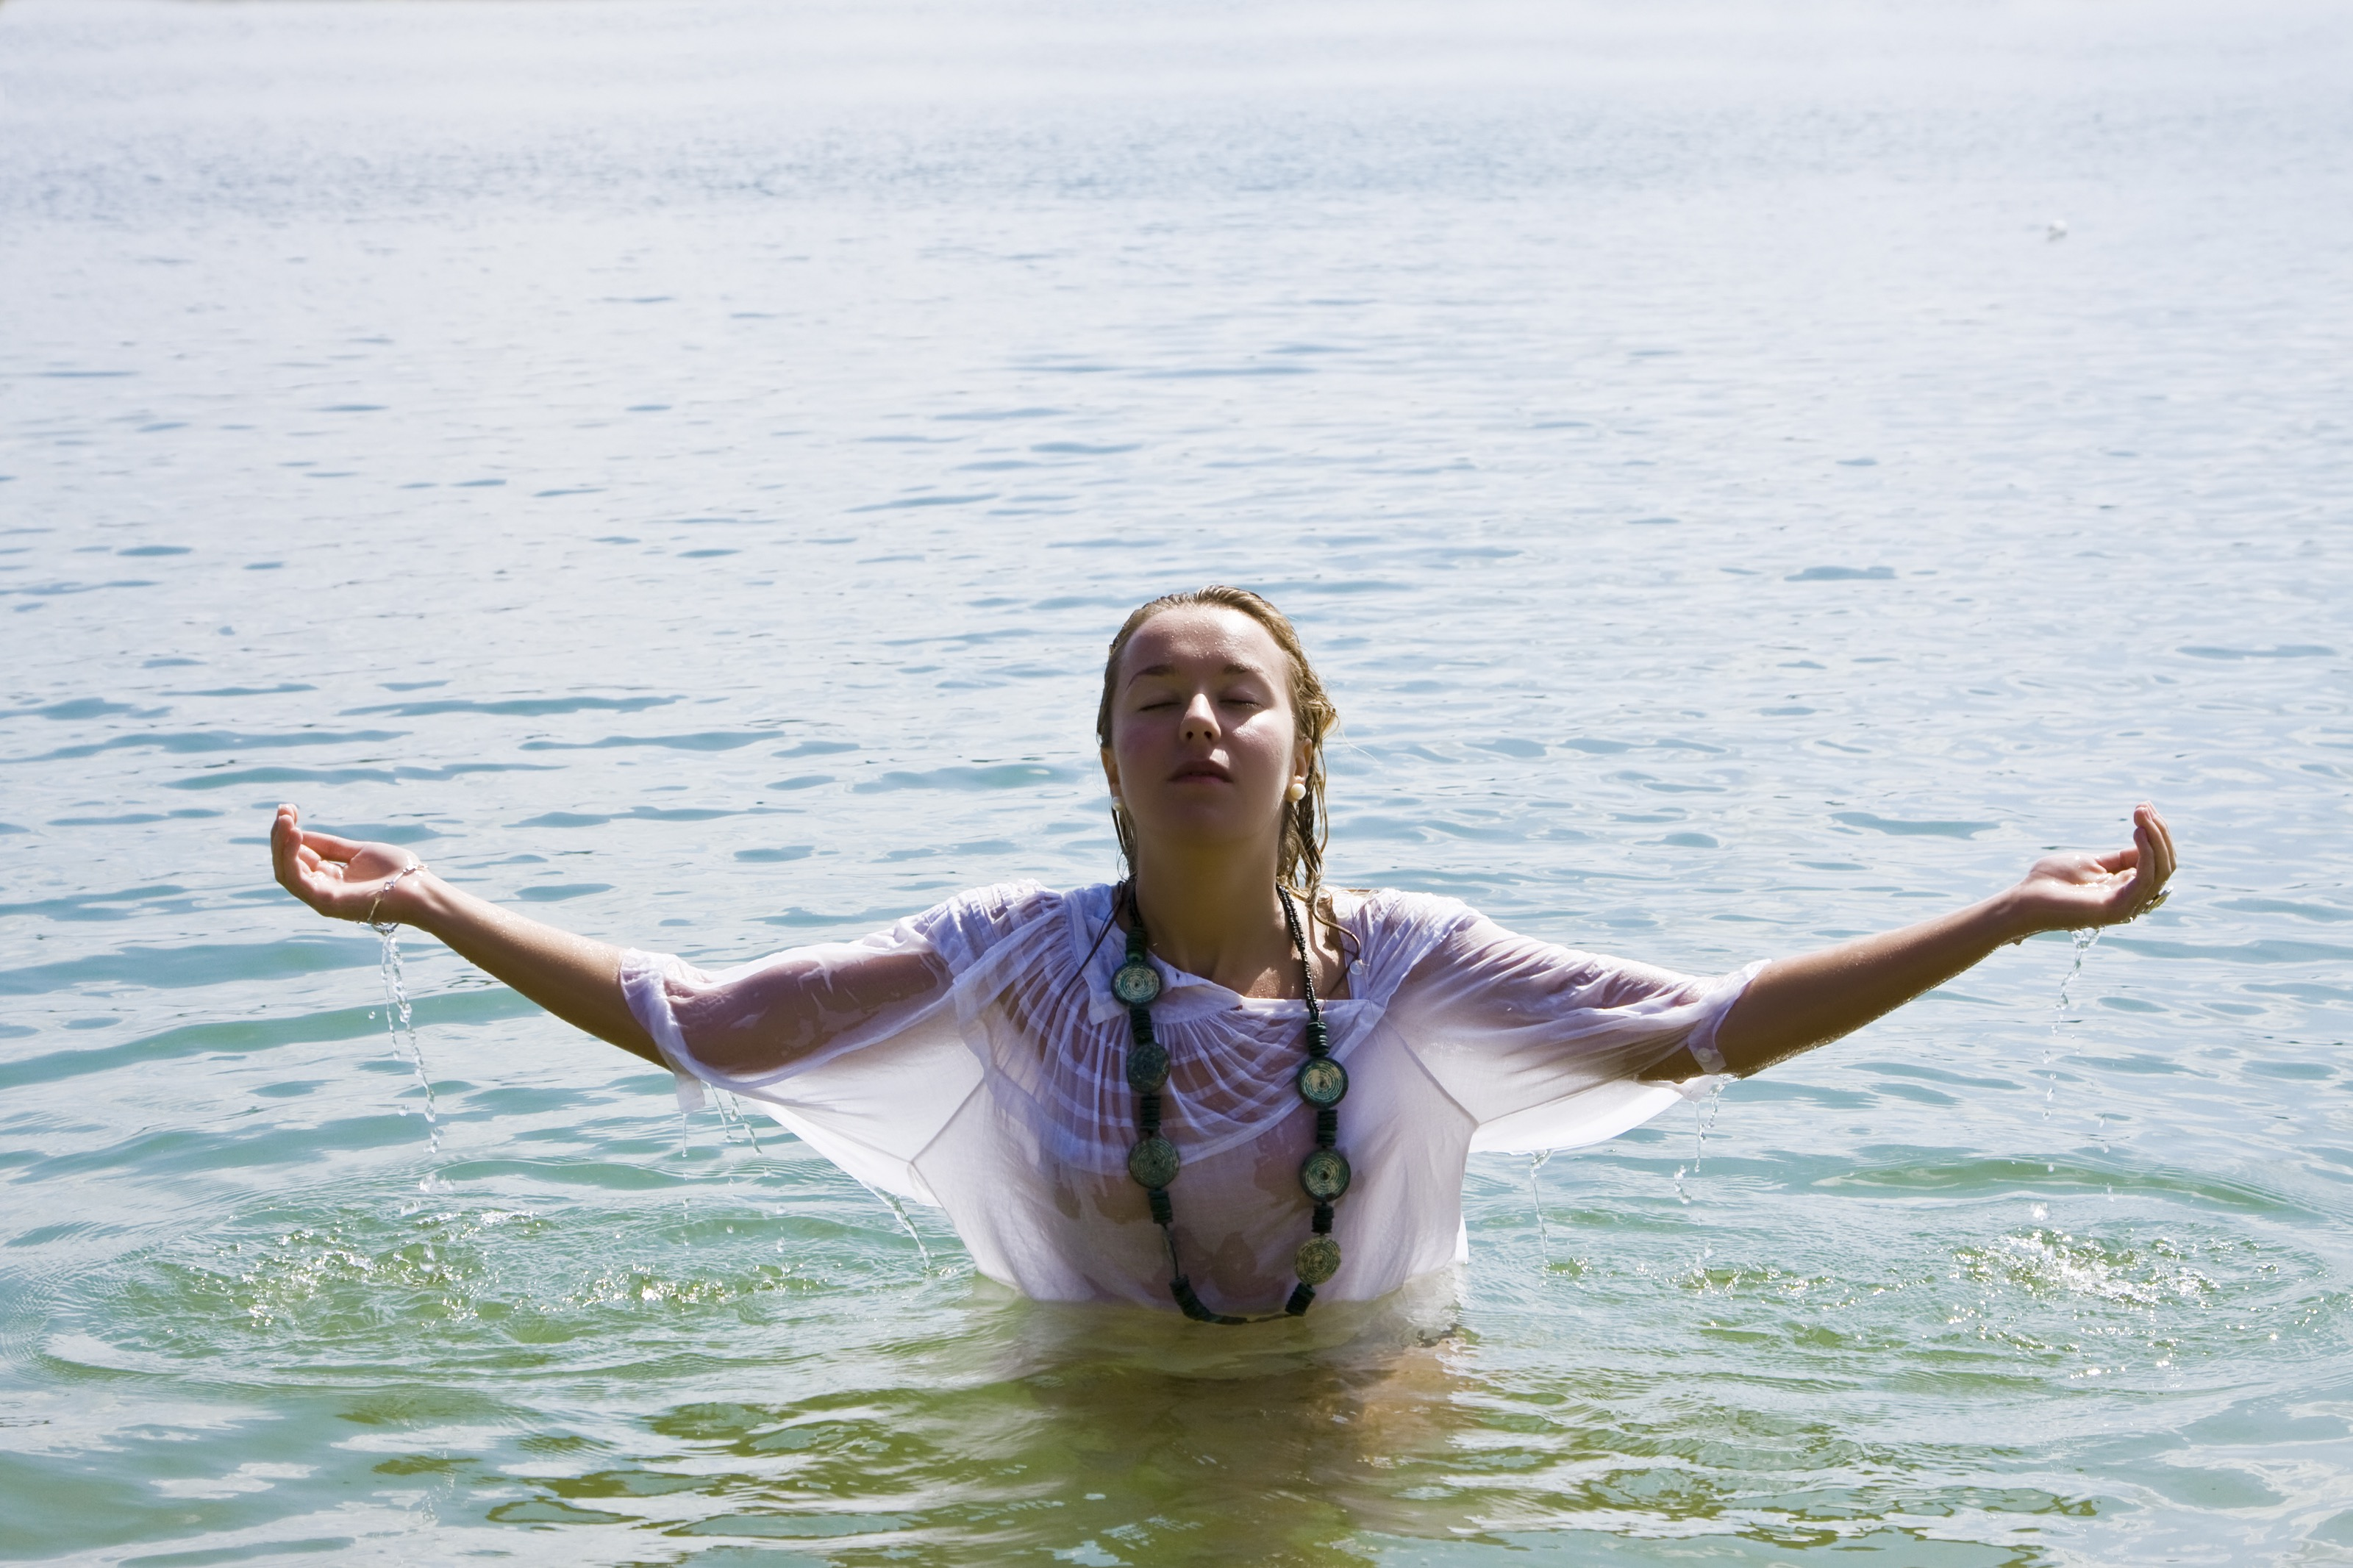 Things to know about baptism get ordained for How do i get ordained to perform wedding ceremonies